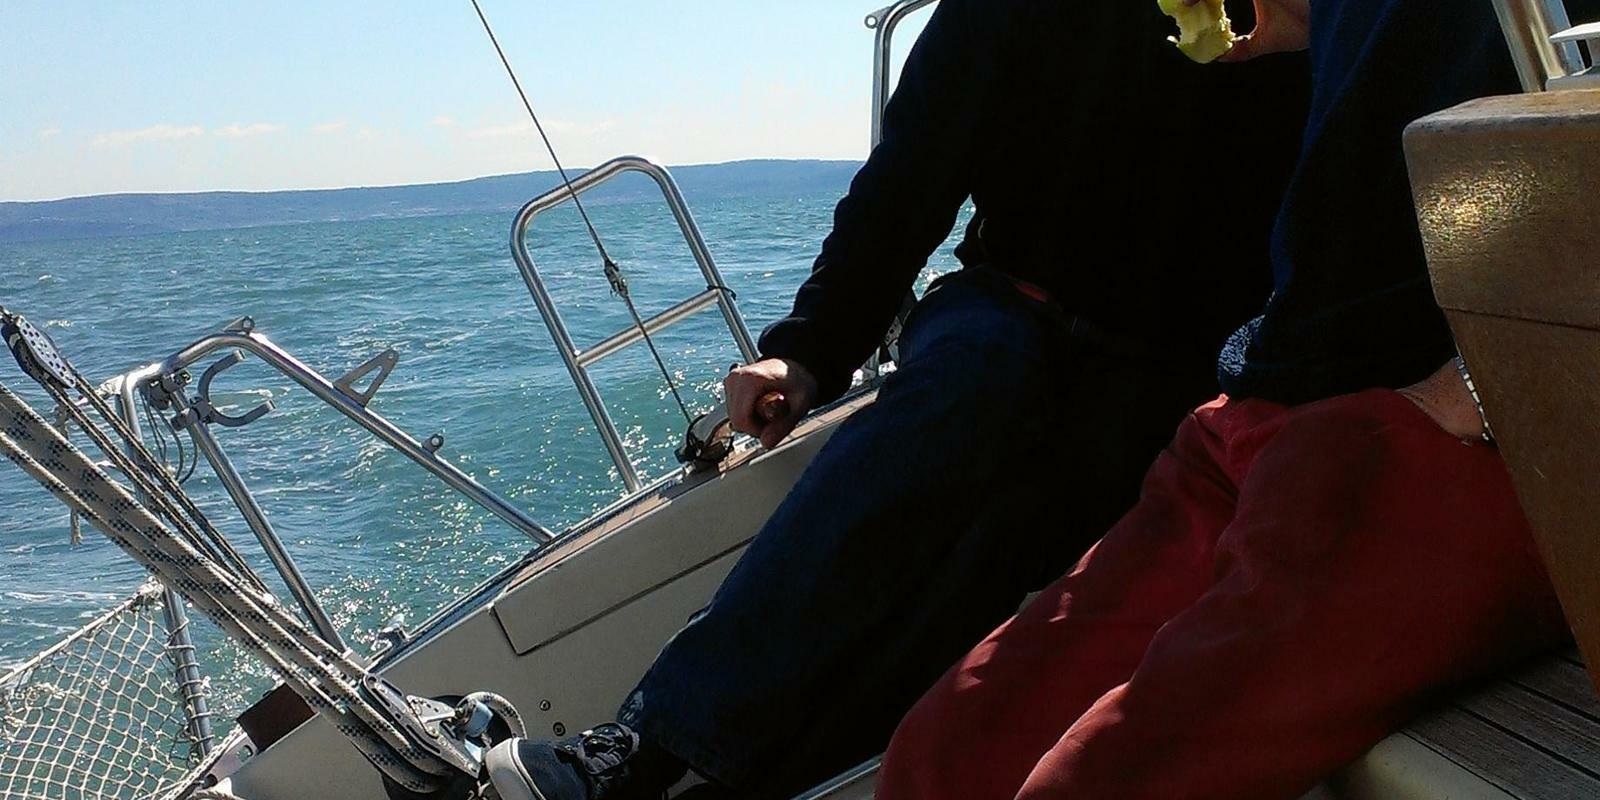 Participation in a club regatta in the extraordinary Gulf of Trieste!